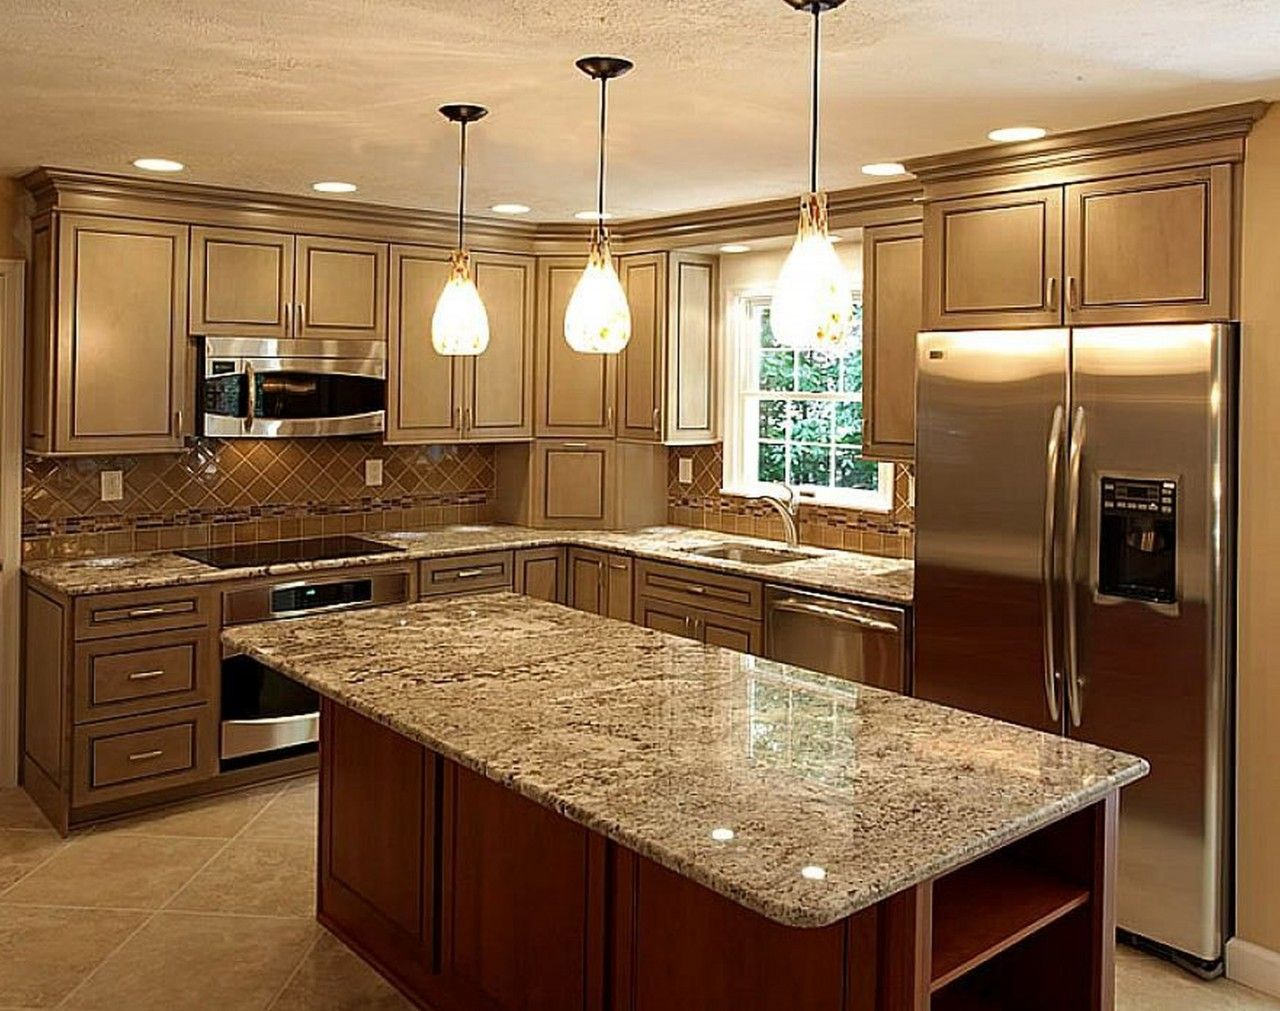 Endearing Home Depot Quartz Countertops Build Magnificent Cambria ...